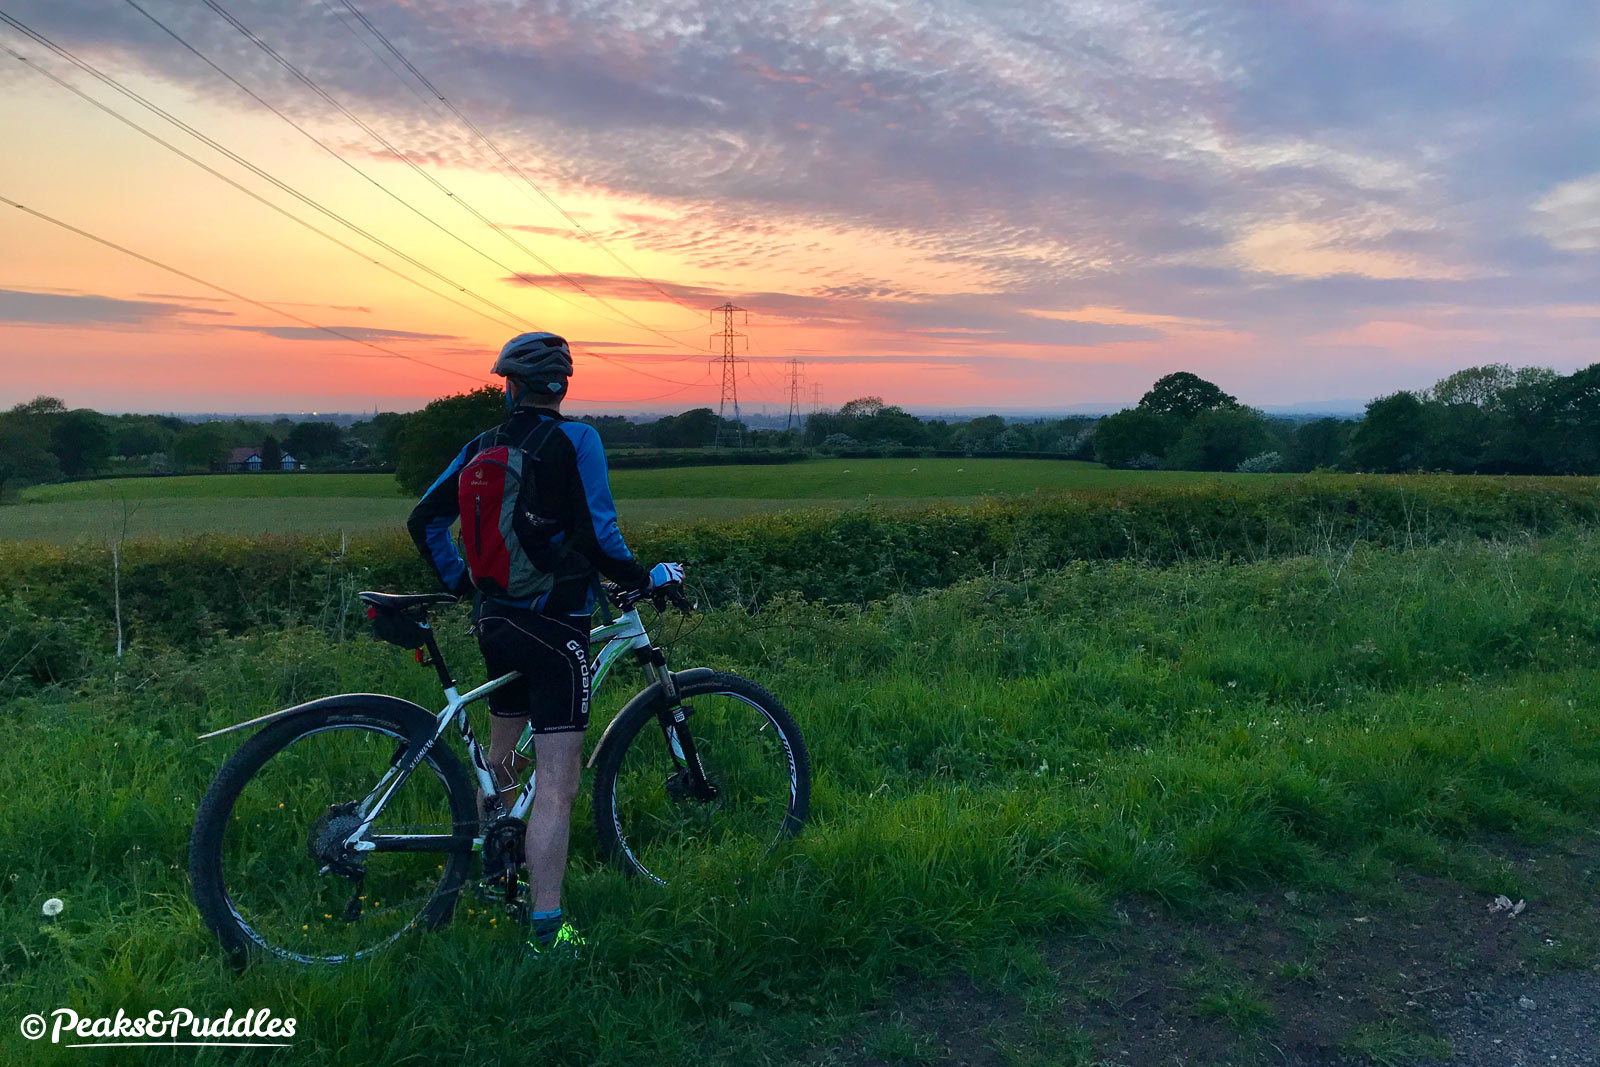 Chasing the sunset on the return trip to Marple is one of the best times to ride the trail, especially as the view opens out with the twinkling lights of Manchester in the distance.